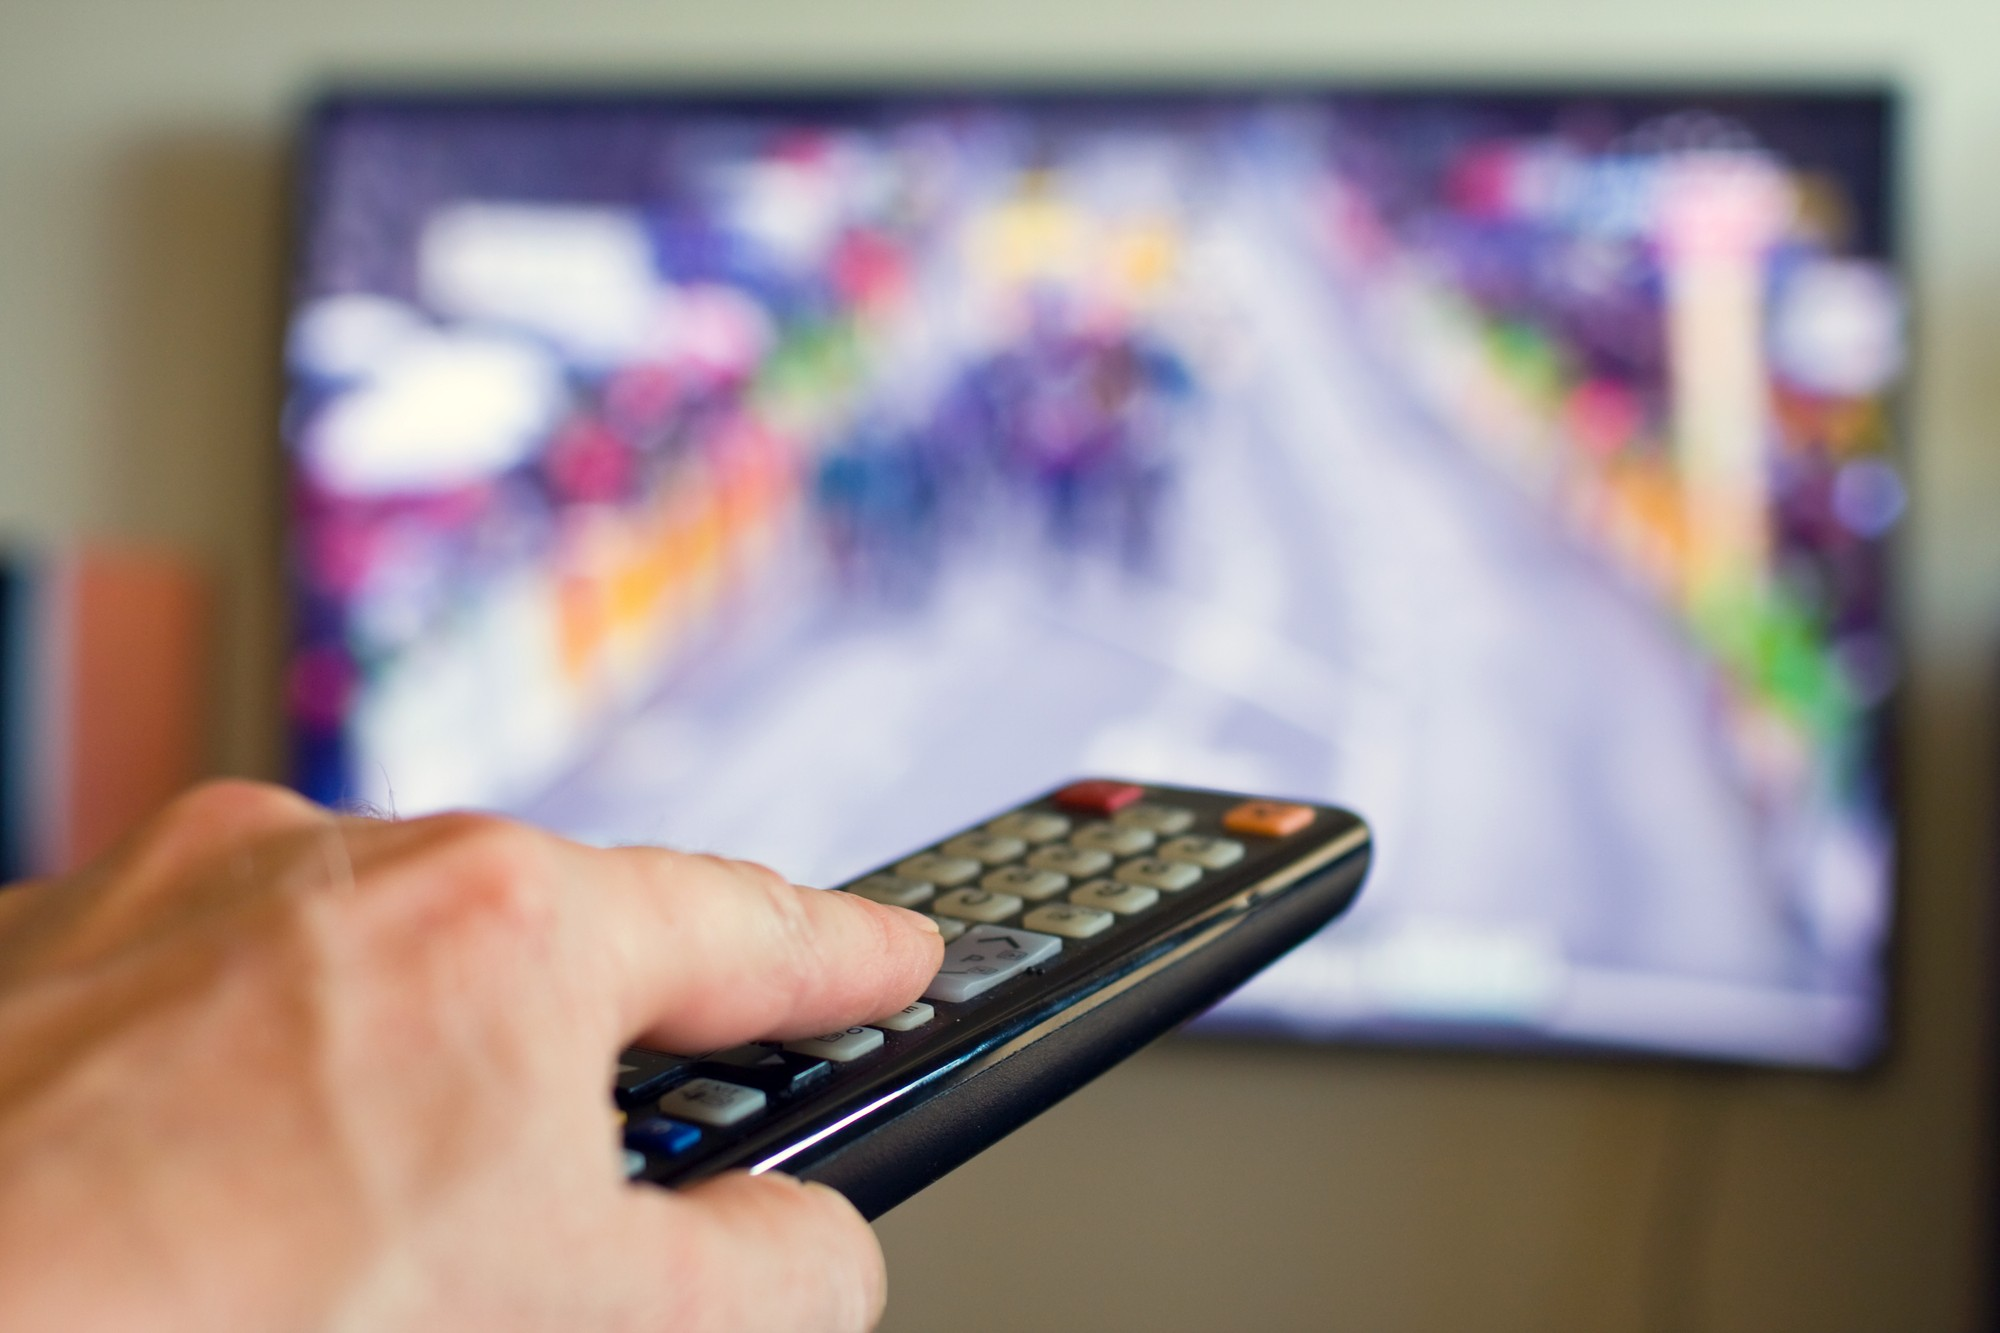 EDO: Measuring Consumer Engagement in TV Advertising